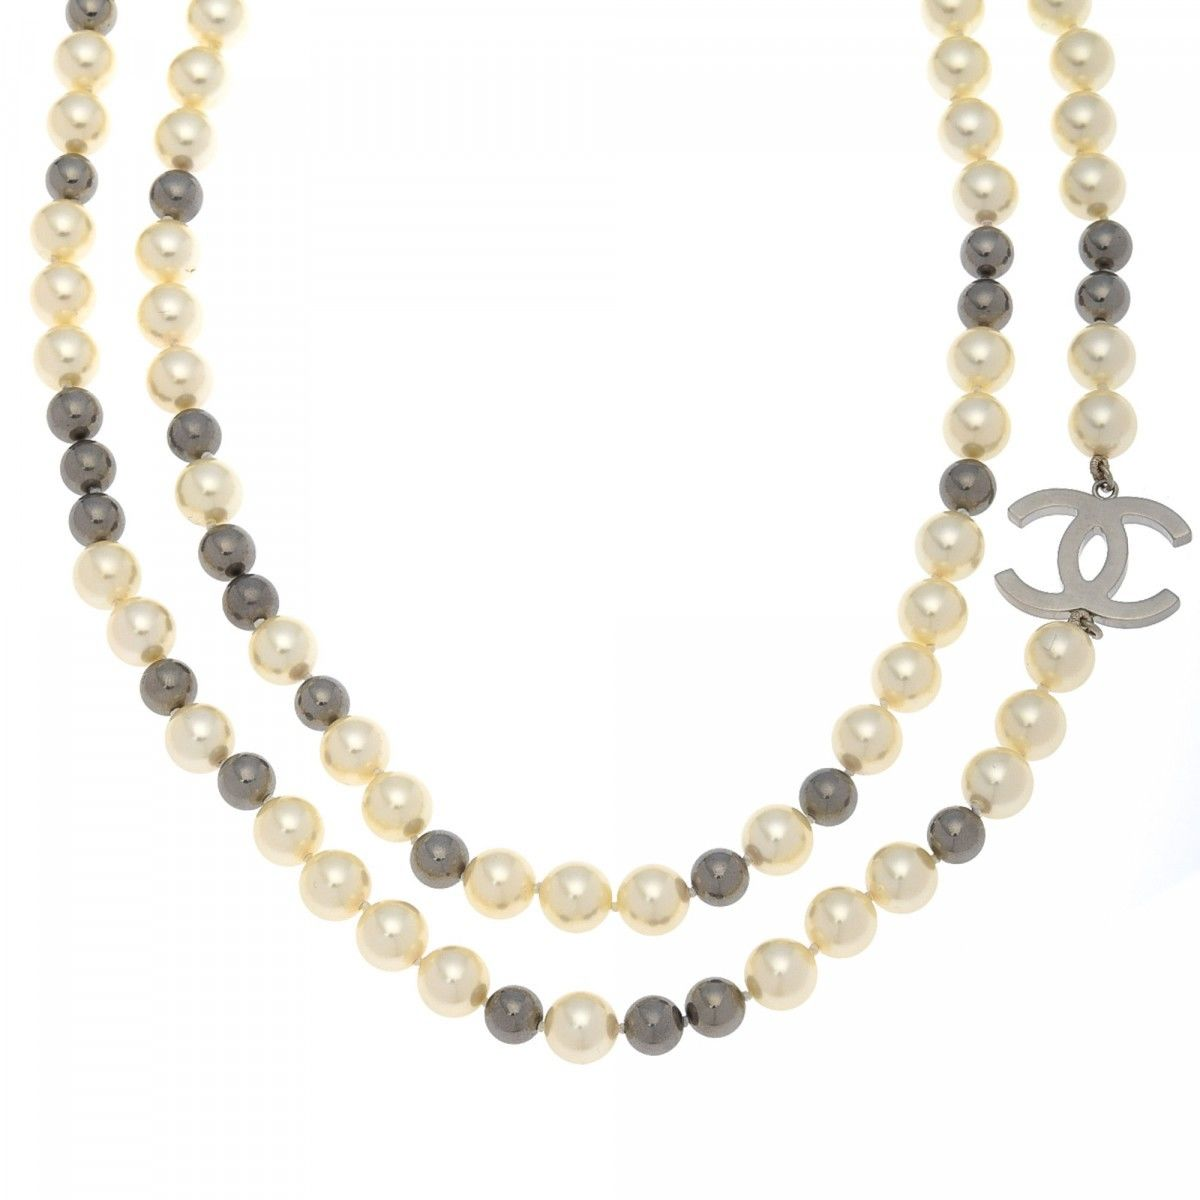 pre pearl logo faux cc metal lxrandco chanel and necklace luxury us silver vintage necklaces owned en large